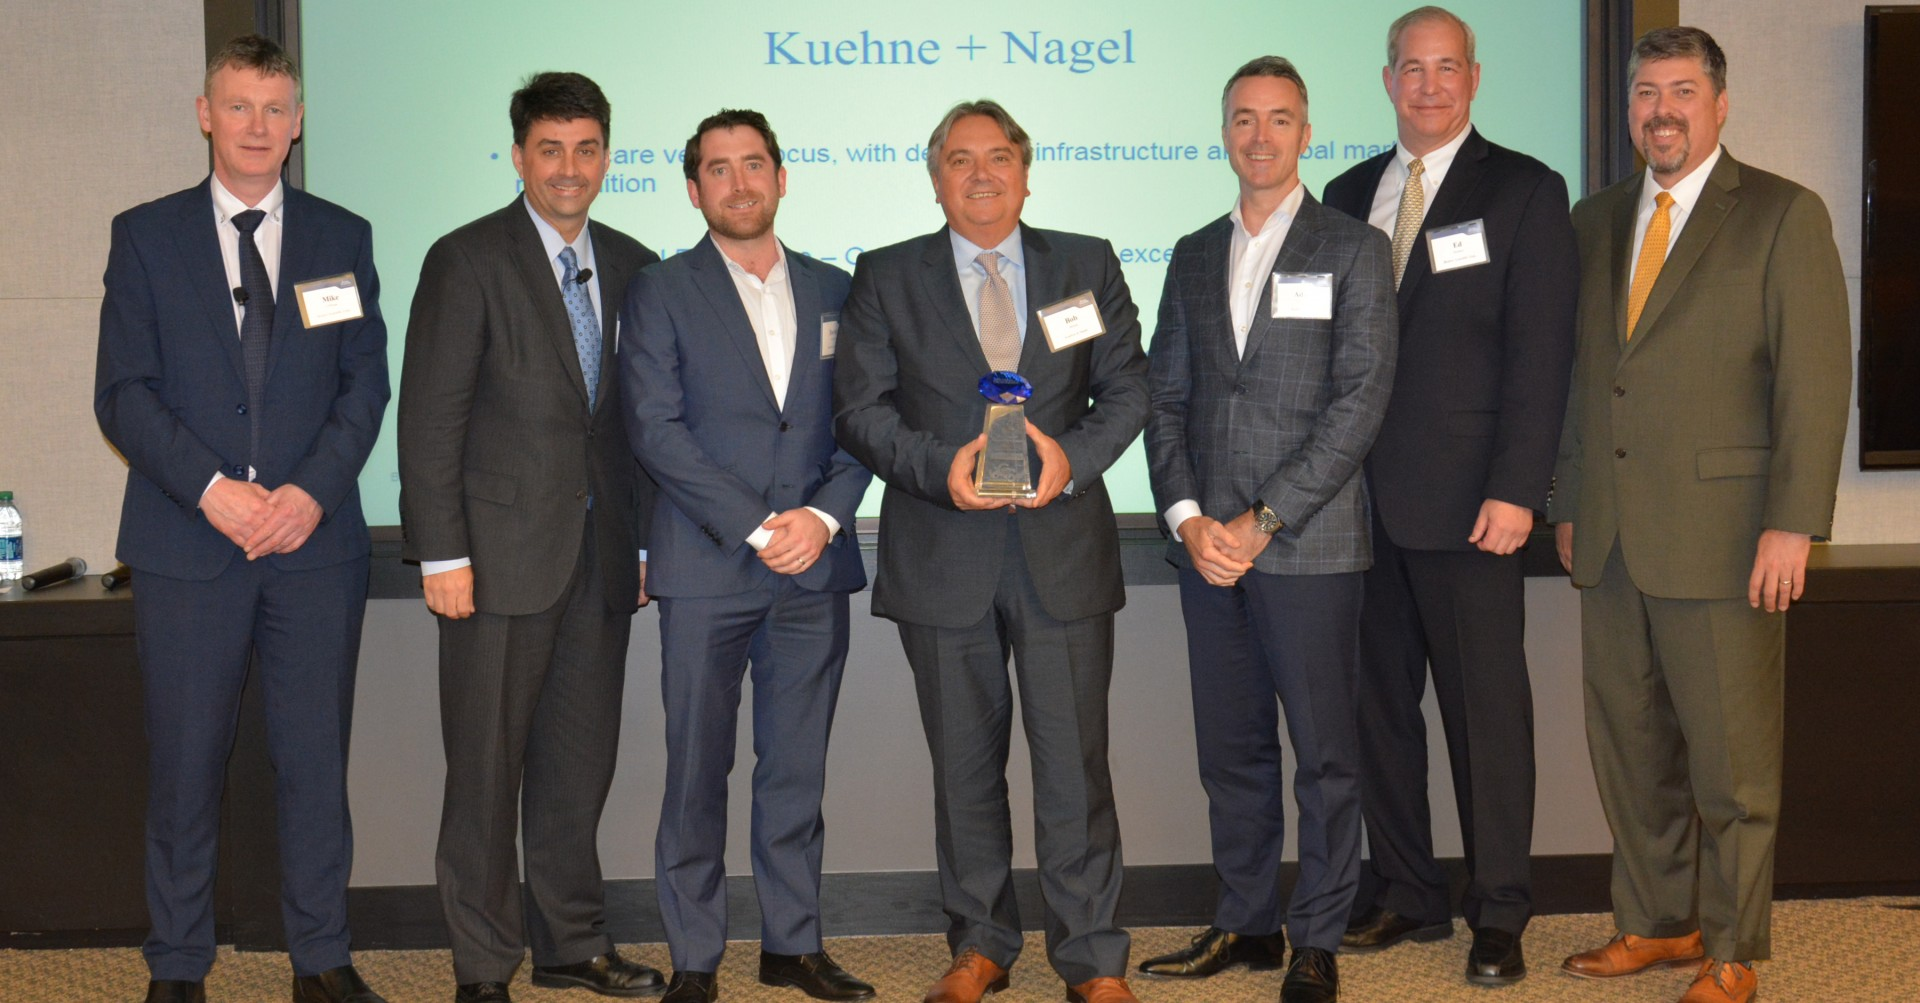 Kuehne + Nagel awarded 2018 Global Supplier Achievement Award from Boston Scientific